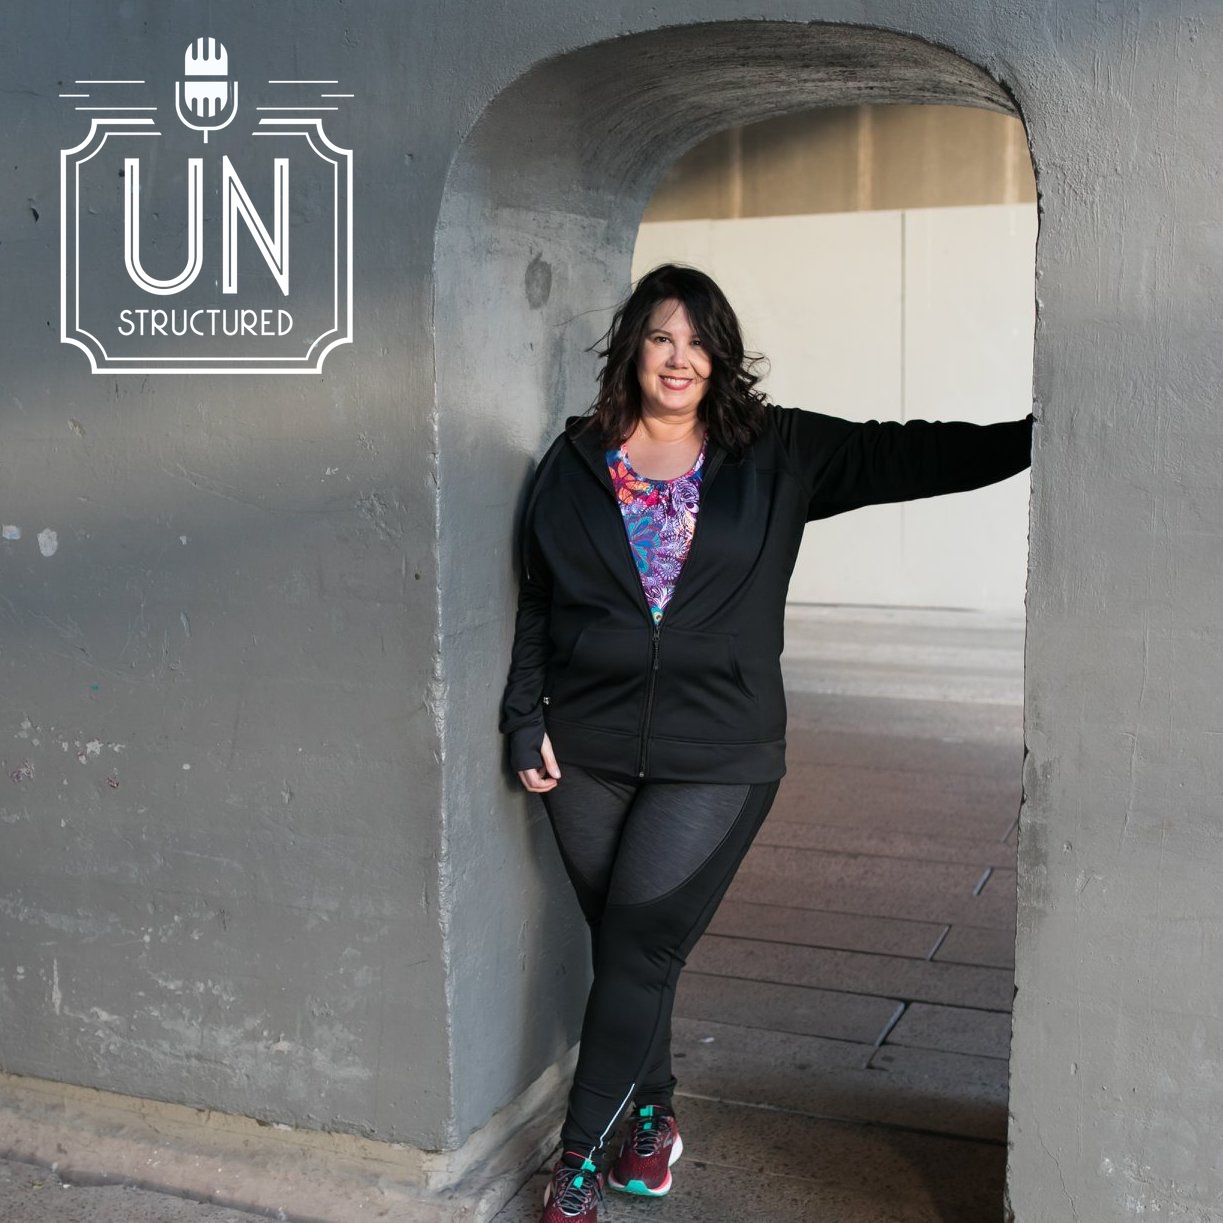 011 - Jill Angie UnstructuredPod Unstructured interviews - Dynamic Informal Conversations with unique wide-ranging and well-researched interviews hosted by Eric Hunley